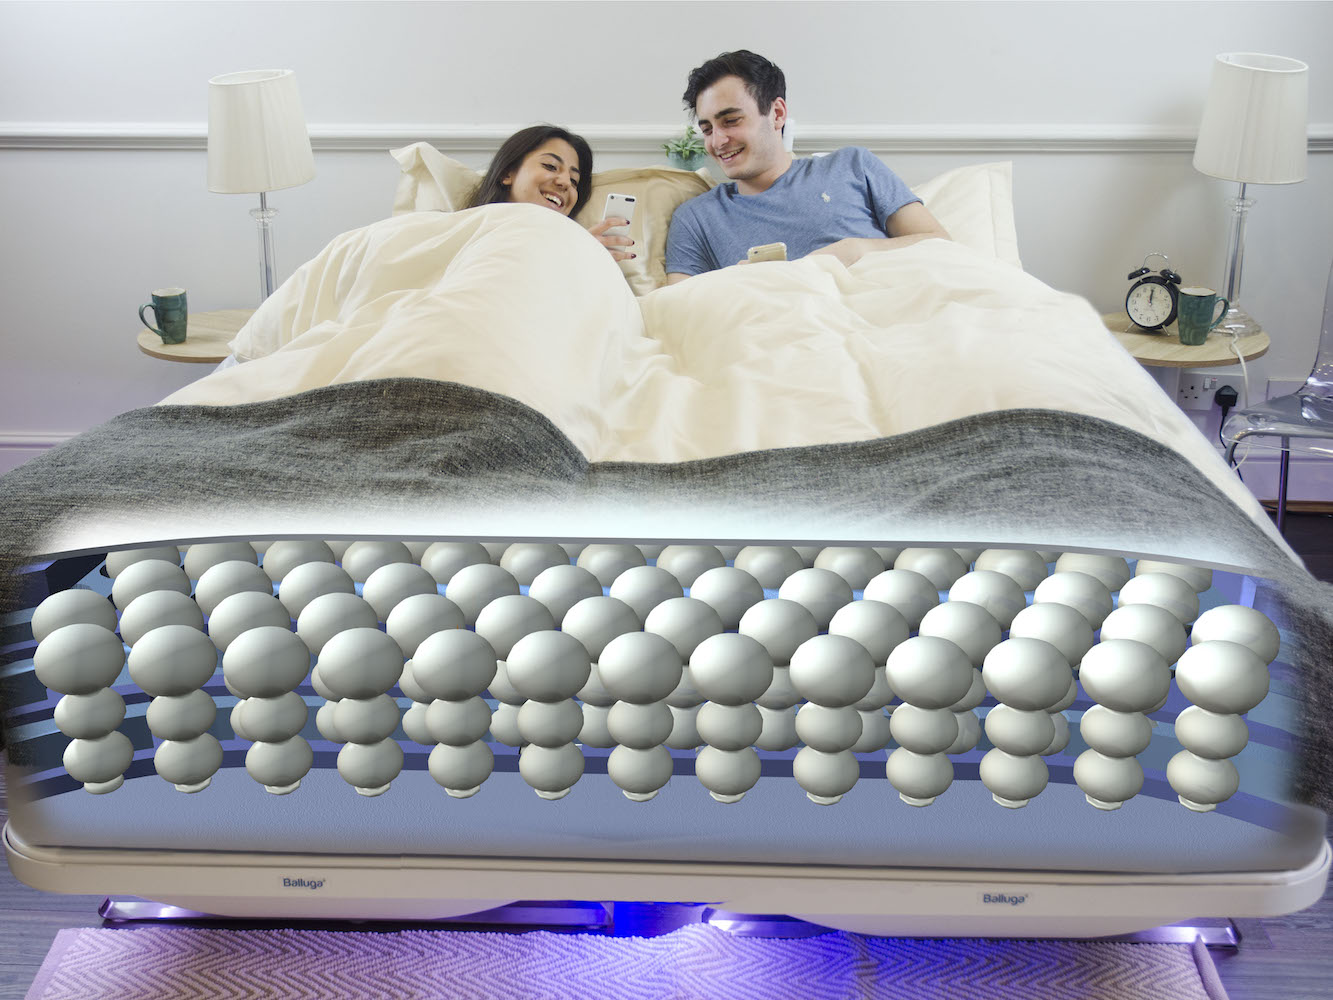 Balluga – The World's Smartest Bed